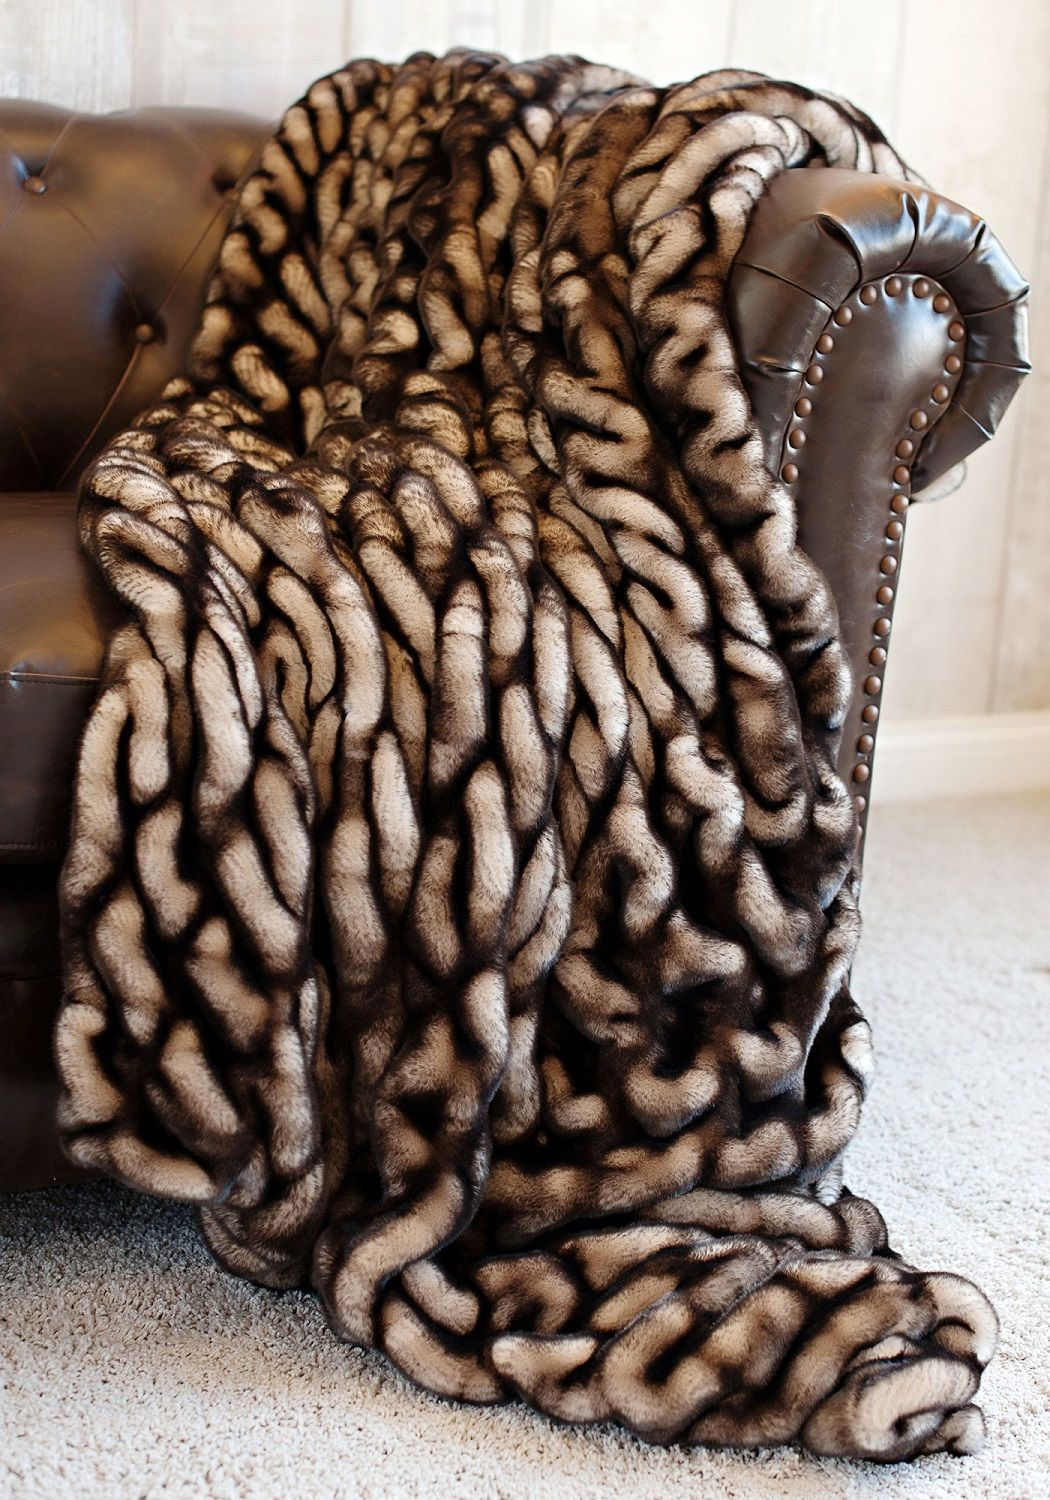 Designer Fur | Fashion Fur | Fur Throw | Fur Blanket | Throw Blanket | Faux Fur | Mink | www.InStyle-Decor.com | Hollywood | Over 5,000 Inspirations Now Online, Luxury Furniture, Mirrors, Lighting, Decorative Accessories & Gifts. Professional Interior Design Solutions For Interior Architects, Interior Specifiers, Interior Designers, Interior Decorators, Hospitality, Commercial, Maritime & Residential Projects. Beverly Hills New York London Barcelona Over 10 Years Worldwide Shipping…